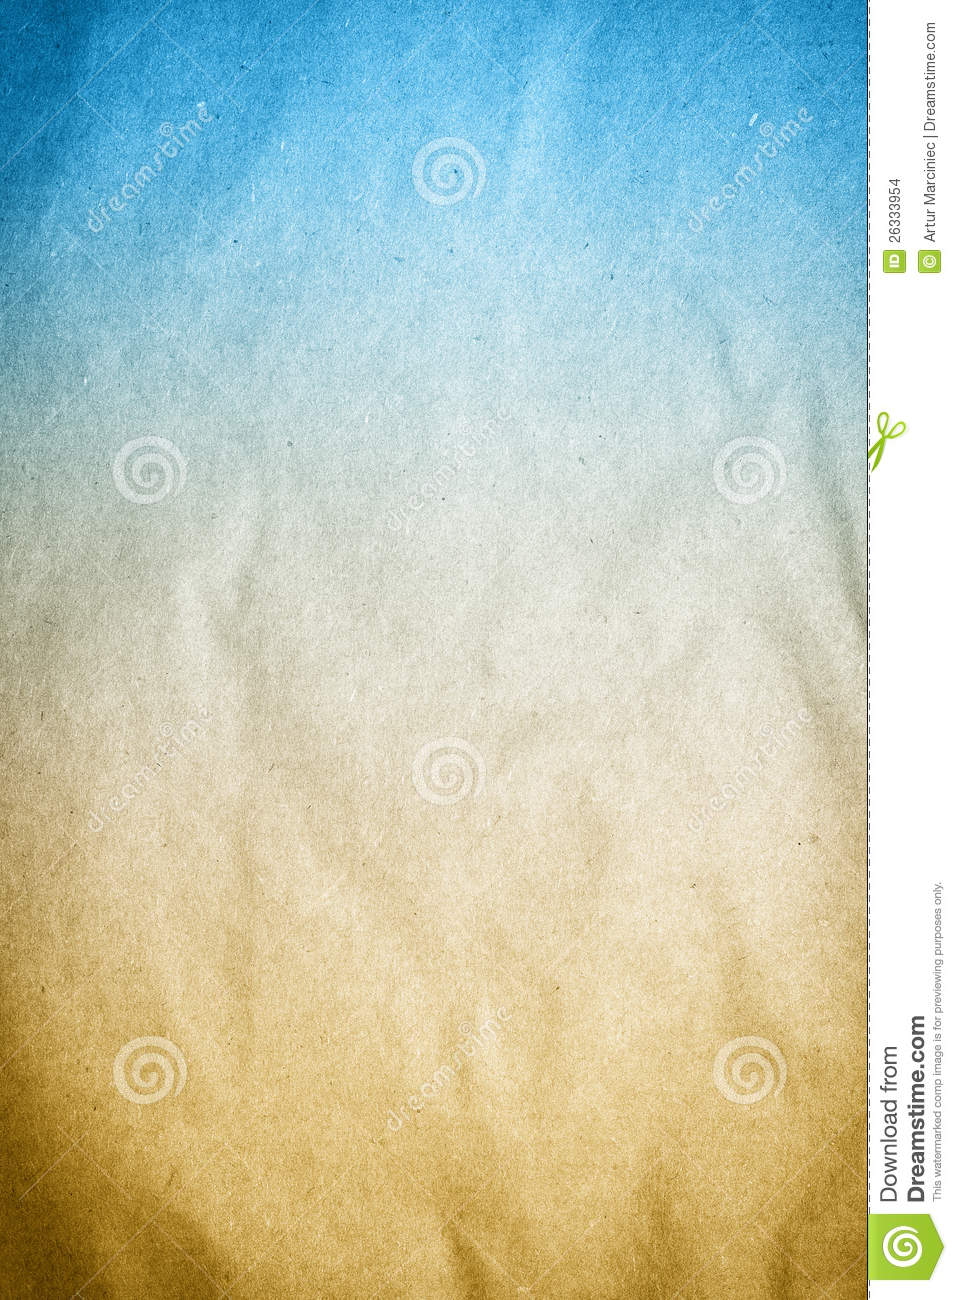 Old Blue Brown Background Paper Texture Stock Images - Image: 26333954